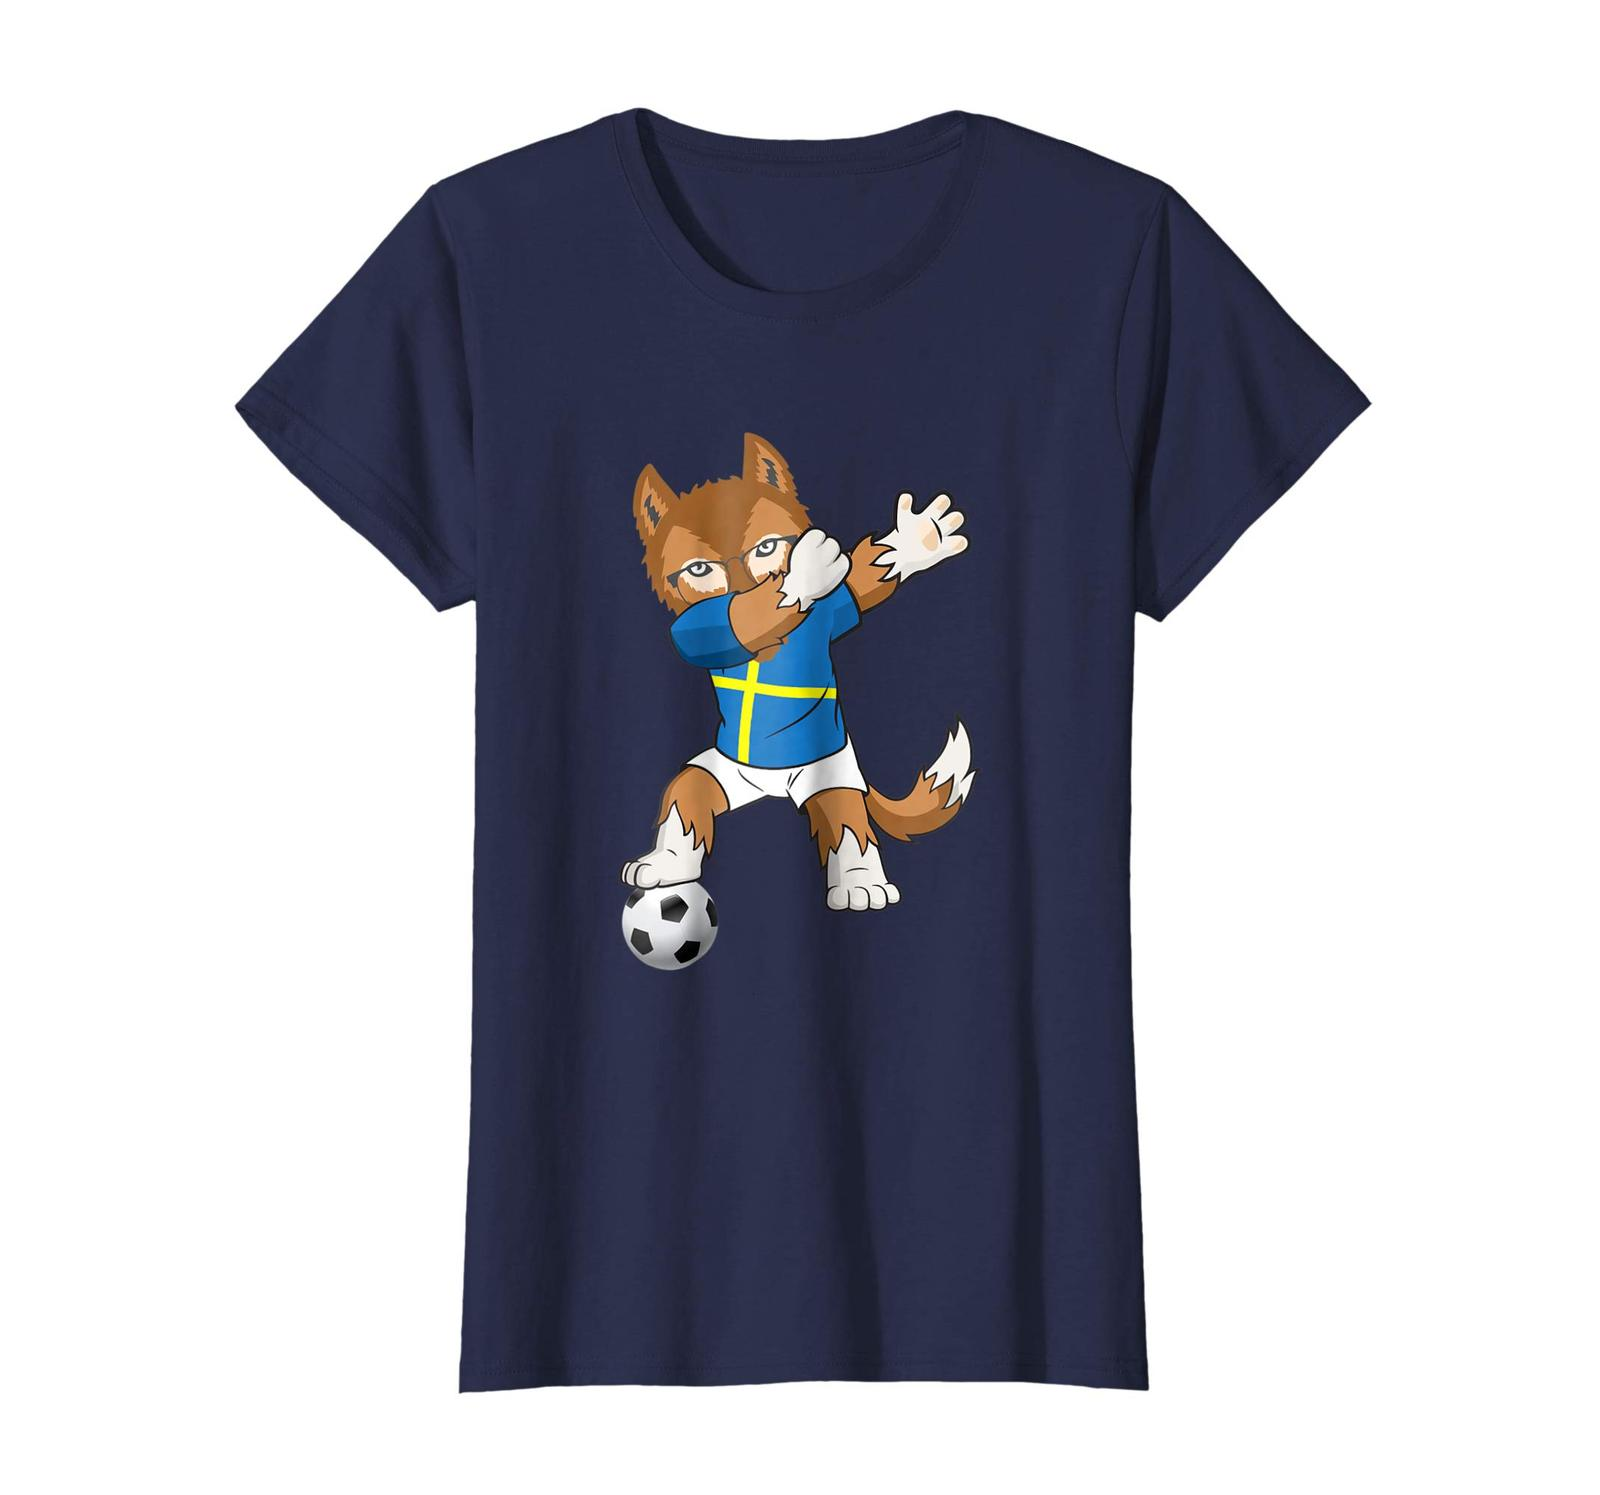 Brother Shirts - Sweden Soccer Team Fan T-Shirt Russia Football 2018 Cup Kit Wow